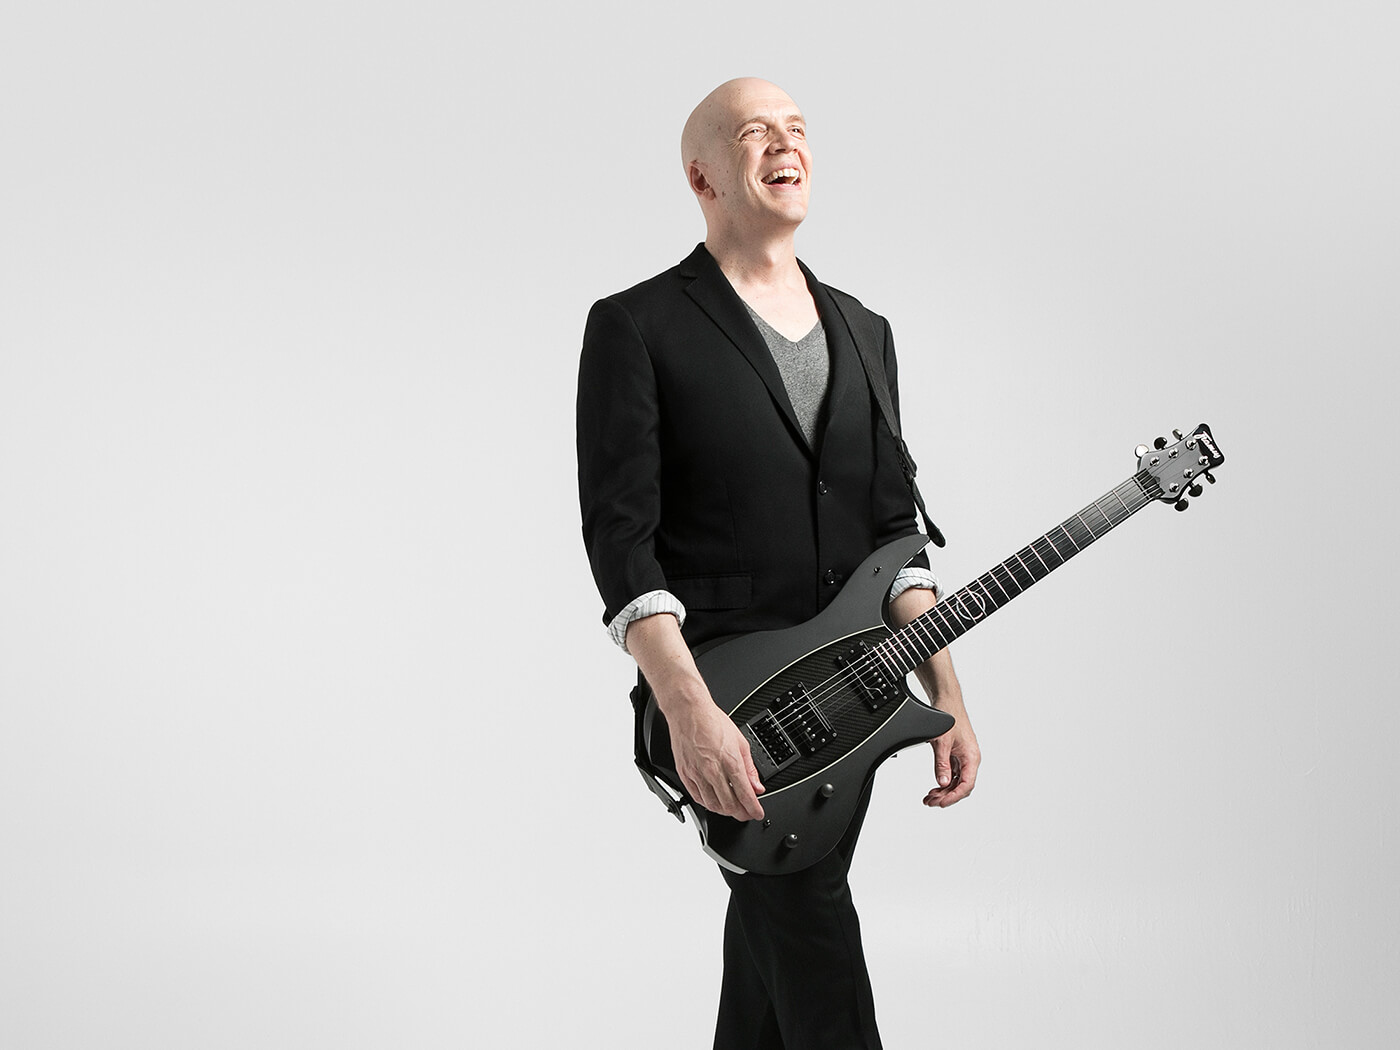 Devin Townsend on his love of Judas Priest, holding onto guitars for  nostalgia and learning to forgive yourself - Guitar.com | All Things Guitar